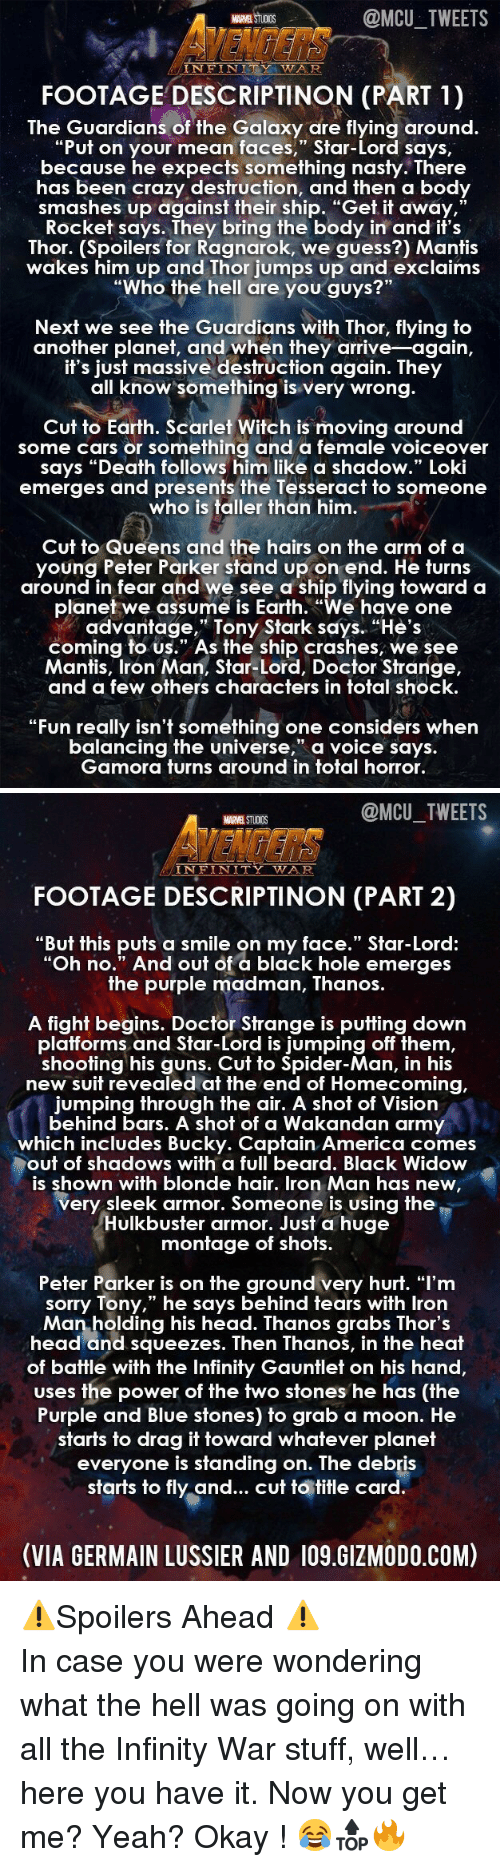 "America, Beard, and Cars: MARVEL STUCIDS  @MCU TWEETS  AVENGERS  FOOTAGE DESCRIPTINON (PART 1)  NFIN  TY WA  The Guardians of the Galaxy are flying around.  ""Put on your mean faces,"" Star-Lord says,  because he expects something nast  y. There  has been crazy destruction, and then a body  smashes up against their ship. ""Get it away,  Rocket says. They bring the body in and it's  Thor. (Spoilers for Ragnarok, we guess?) Mantis  wakes him up and Thor jumps up and exclaims  ""Wh ?""  91  o the hell are you guys  Next we see the Guardians with Thor, flying to  another planet, and when they arrive-again,  If s jUsf massive desfruction again. They  all know something is very wrong.  Cut to Earth. Scarlet Witch is moving around  some cars or something and a female voiceover  says ""Death follows him like a shadow."" Loki  emerges and presents the Tesseracf to someone  who is taller than him  Cut to Queens and the hairs on the arm of a  young Peter Parker stand up on end. He turns  around in fear and we see a ship flying toward a  planet we assume is Earth. ""We have one  advantage,"" Tony Stark says. ""He's  coming to us."" As the ship crashes, we see  Mantis, Iron Man, Star-Lord, Doctor Strange,  and a few others characters in total shock  ""Fun really isn't something one considers when  balancing the universe, a voice says.  Gamora furns around in fofal horror.   @MCU_TWEETS  MARVEL STUDIOS  VENDERS '  INFINITY WAR  FOOTAGE DESCRIPTINON (PART 2)  ""But this puts a smile on my face."" Star-Lord:  ""Oh no."" And out of a black hole emerges  he purple madman, Thanos.  A fight begins. Doctor Strange is putting down  platforms  and Star-Lord is jumping off them  shooting his guns. Cut to Spider-Man, in his  new suit revealed at the end of Homecoming,  jumping through the air. A shot of Vision  behind bars. A shot of a Wakandan army  which includes Bucky. Captain America comes  out of shadows with a full beard. Black Widow  is shown with blonde hair. Iron Man has new  very sleek armor. Someone is using the  UlKbUusfer armor. JUST a huge  monfage of shofs.  Peter Parker is on the ground very hurt. ""l'm  sorry Tony,"" he says behind tears with lron  Man holding his head. Thanos grabs Thor's  head and squeezes. Then Thanos, in the heat  of battle with the Infinity Gauntlet on his hand,  uses the power of the two stones he has (the  Purple and Blue stones) to grab a moon. Hee  starts to drag it toward whatever planet  eve  ryone is standing on. The debris  starts to fly and... cut to title card.  (VIA GERMAIN LUSSIER AND 109.GIZMODO.COM) <p>⚠️Spoilers Ahead ⚠️</p>  <p>In case you were wondering what the hell was going on with all the Infinity War stuff, well… here you have it. Now you get me? Yeah? Okay ! 😂🔝🔥</p>"